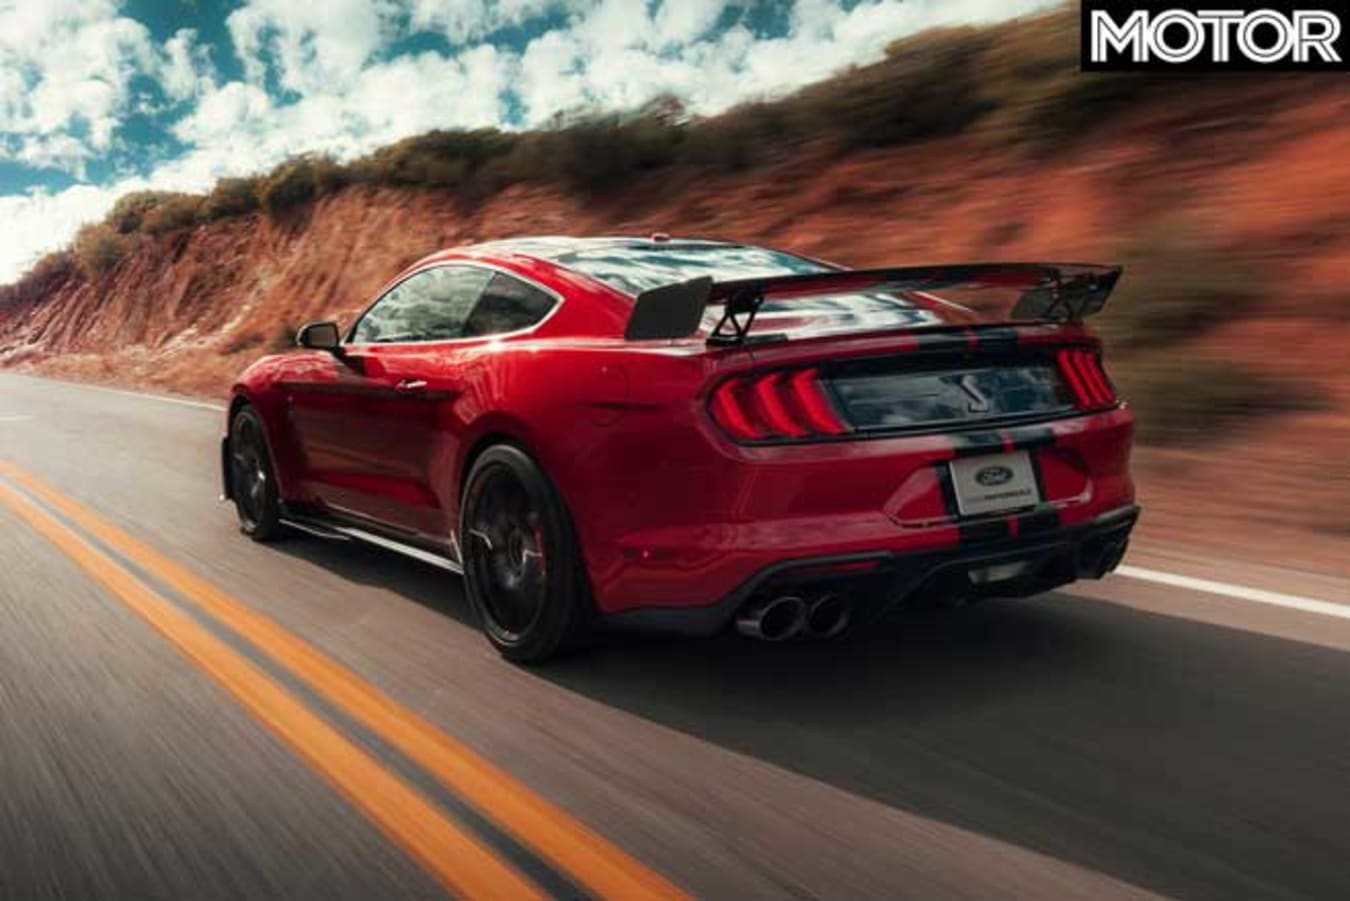 2020 Ford Mustang Shelby GT500 performance